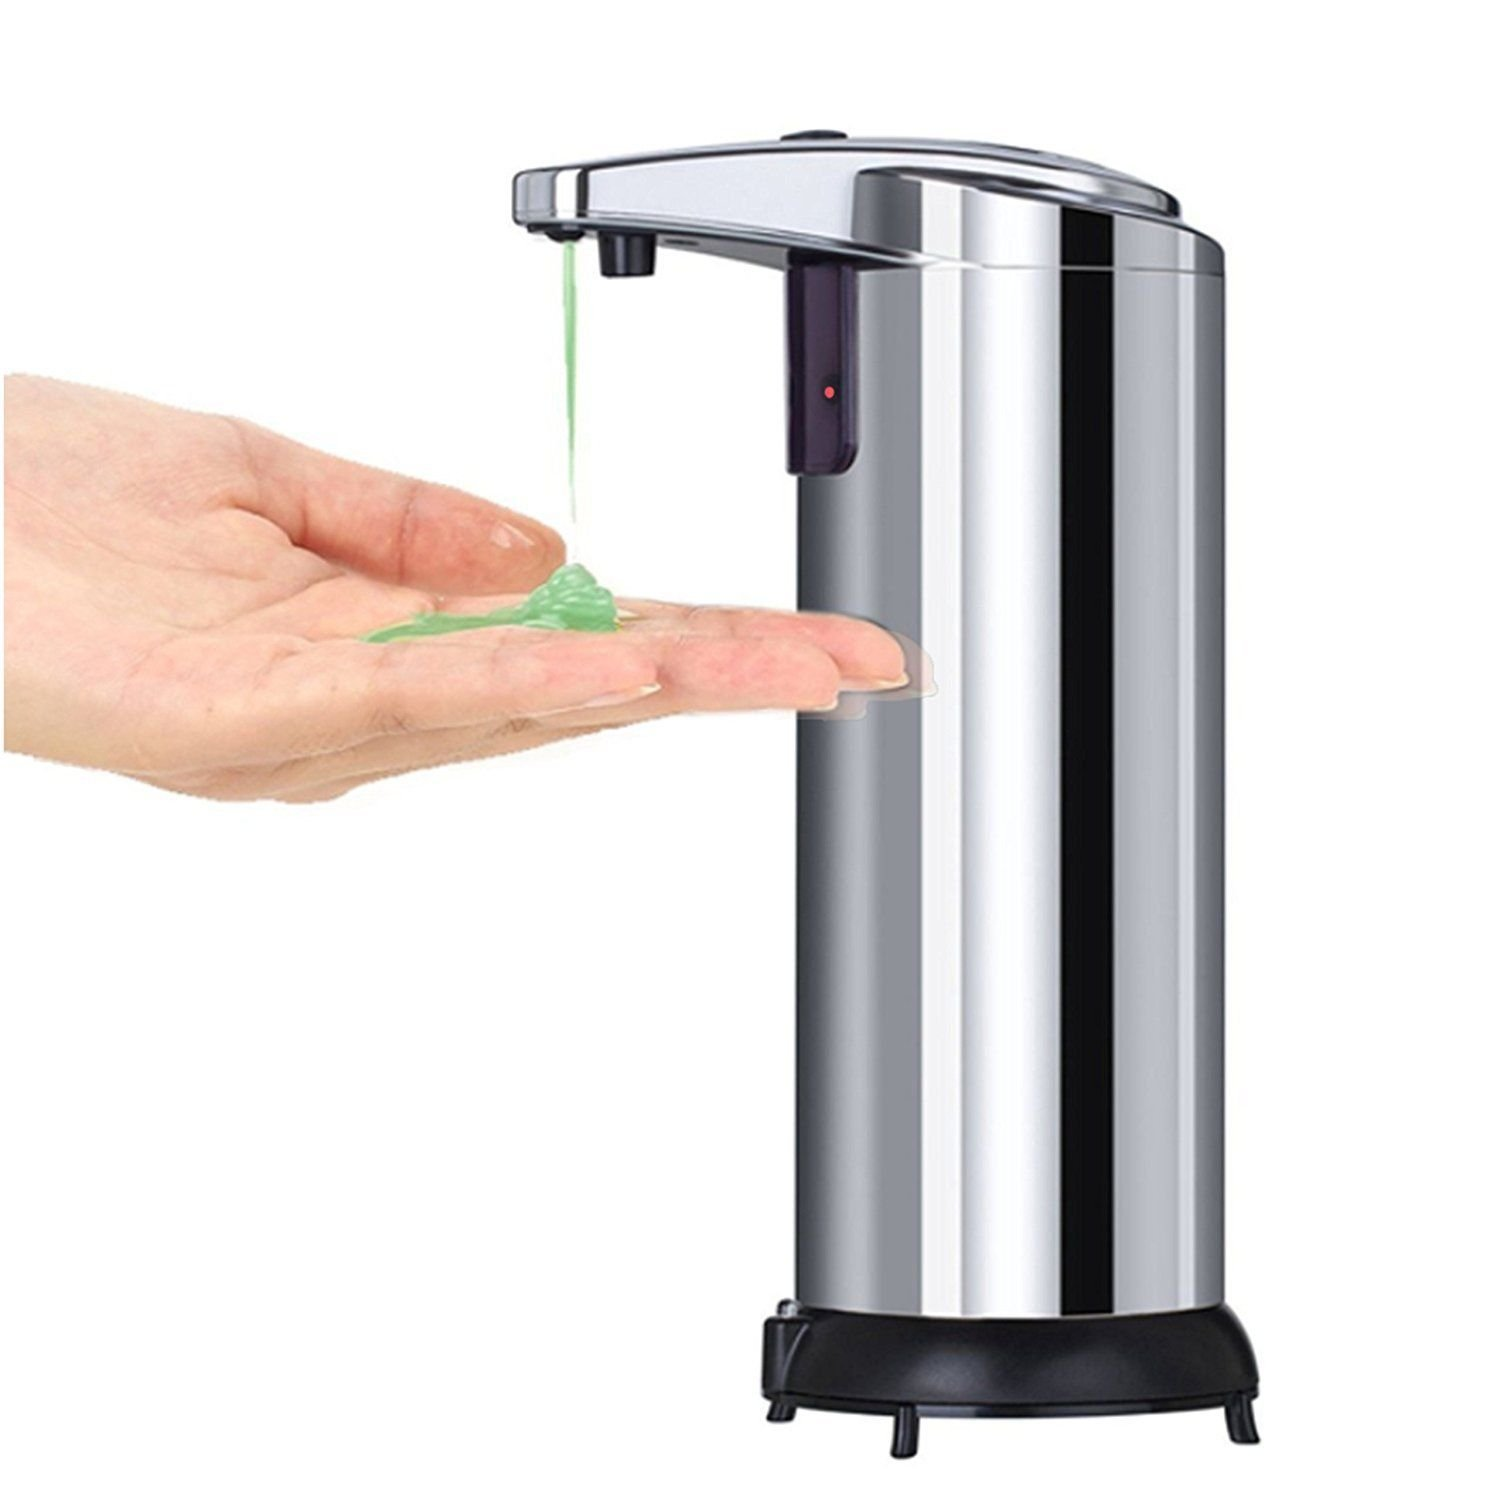 Hand Soap Dispenser,Sobotoo Automatic Touchless Stainless-Silver Soap Dispenser, Auto Motion Sensor Battery Operated Hand sanitizer Kid Dish Soap Dispenser For Kitchen Bathroom with Waterproof Base